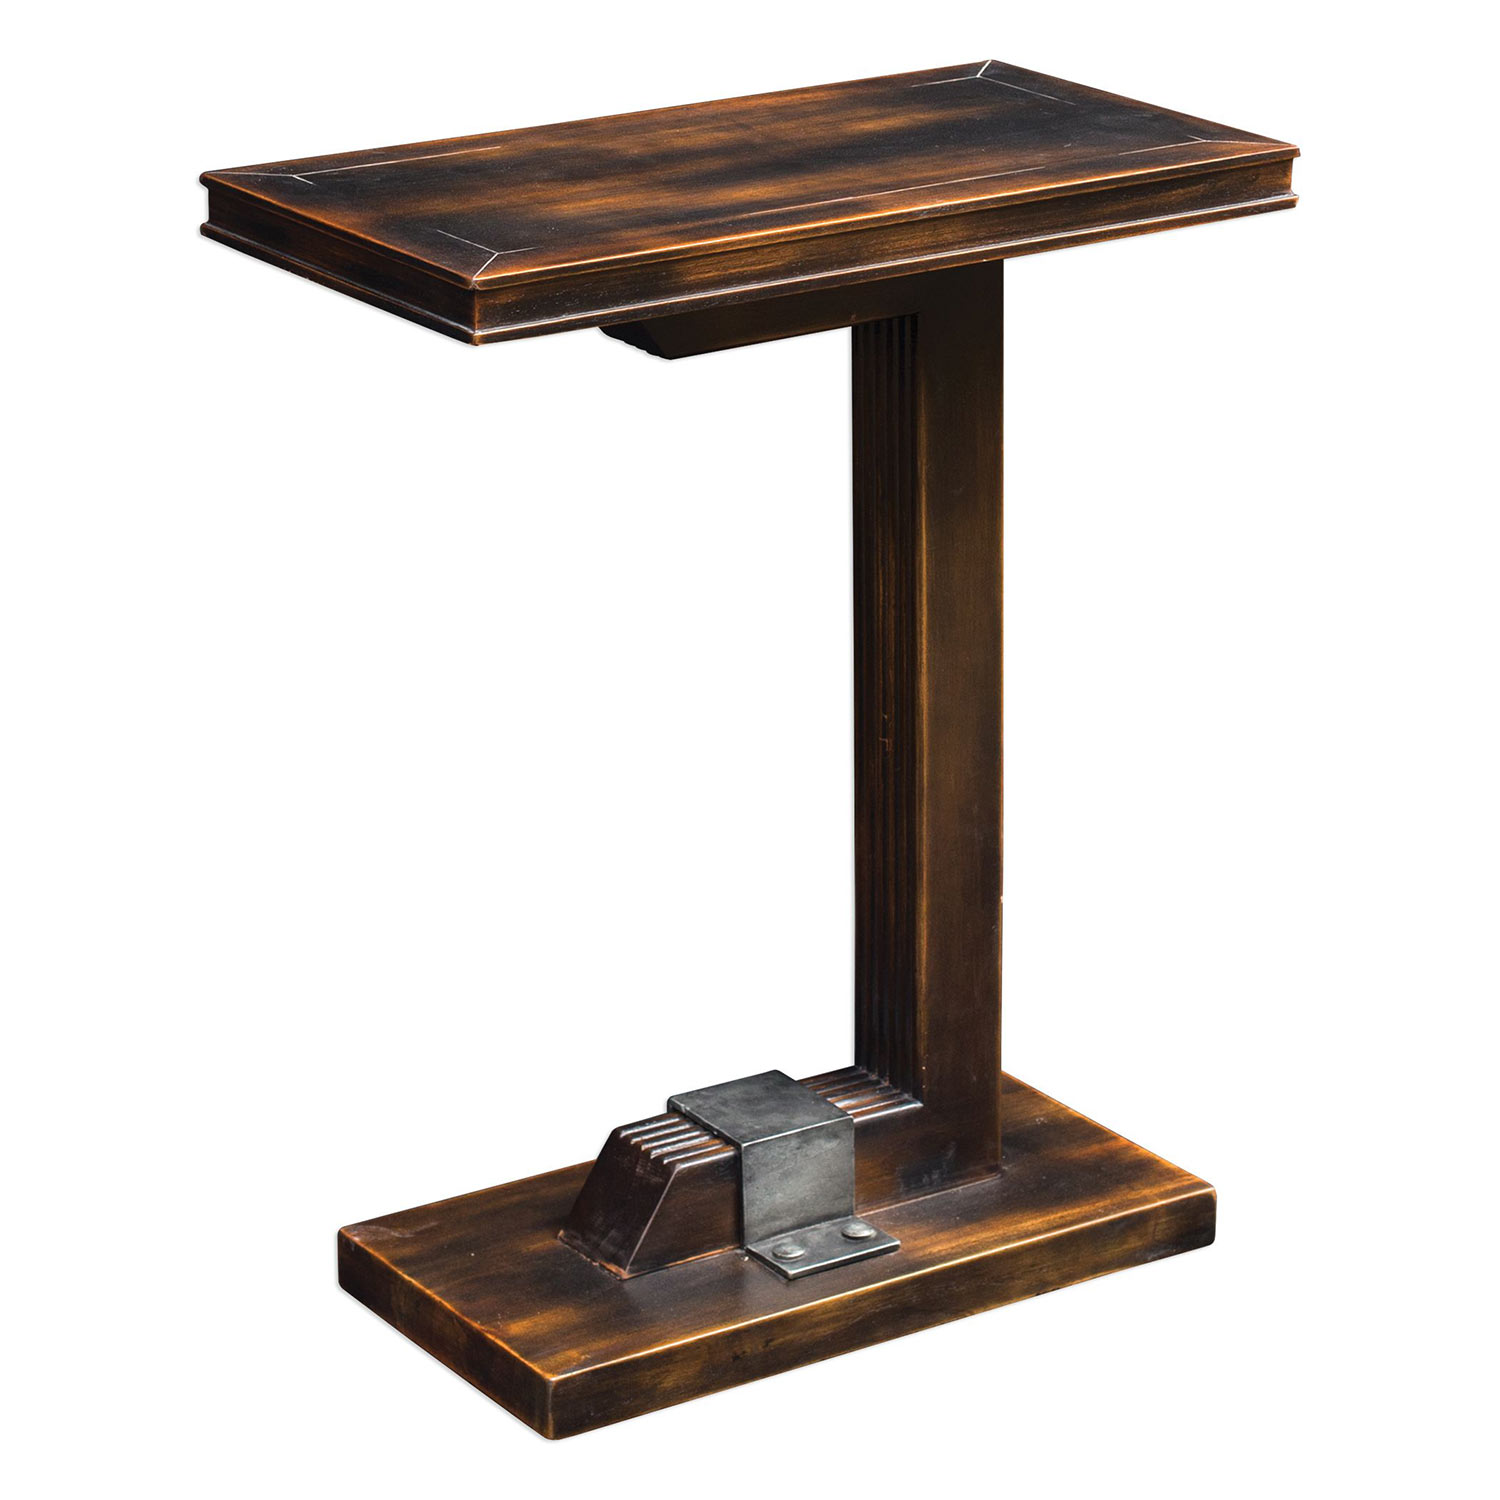 uttermost deacon industrial accent table uttermost deacon industrial accent table uttermost 25805 at      rh   homelement